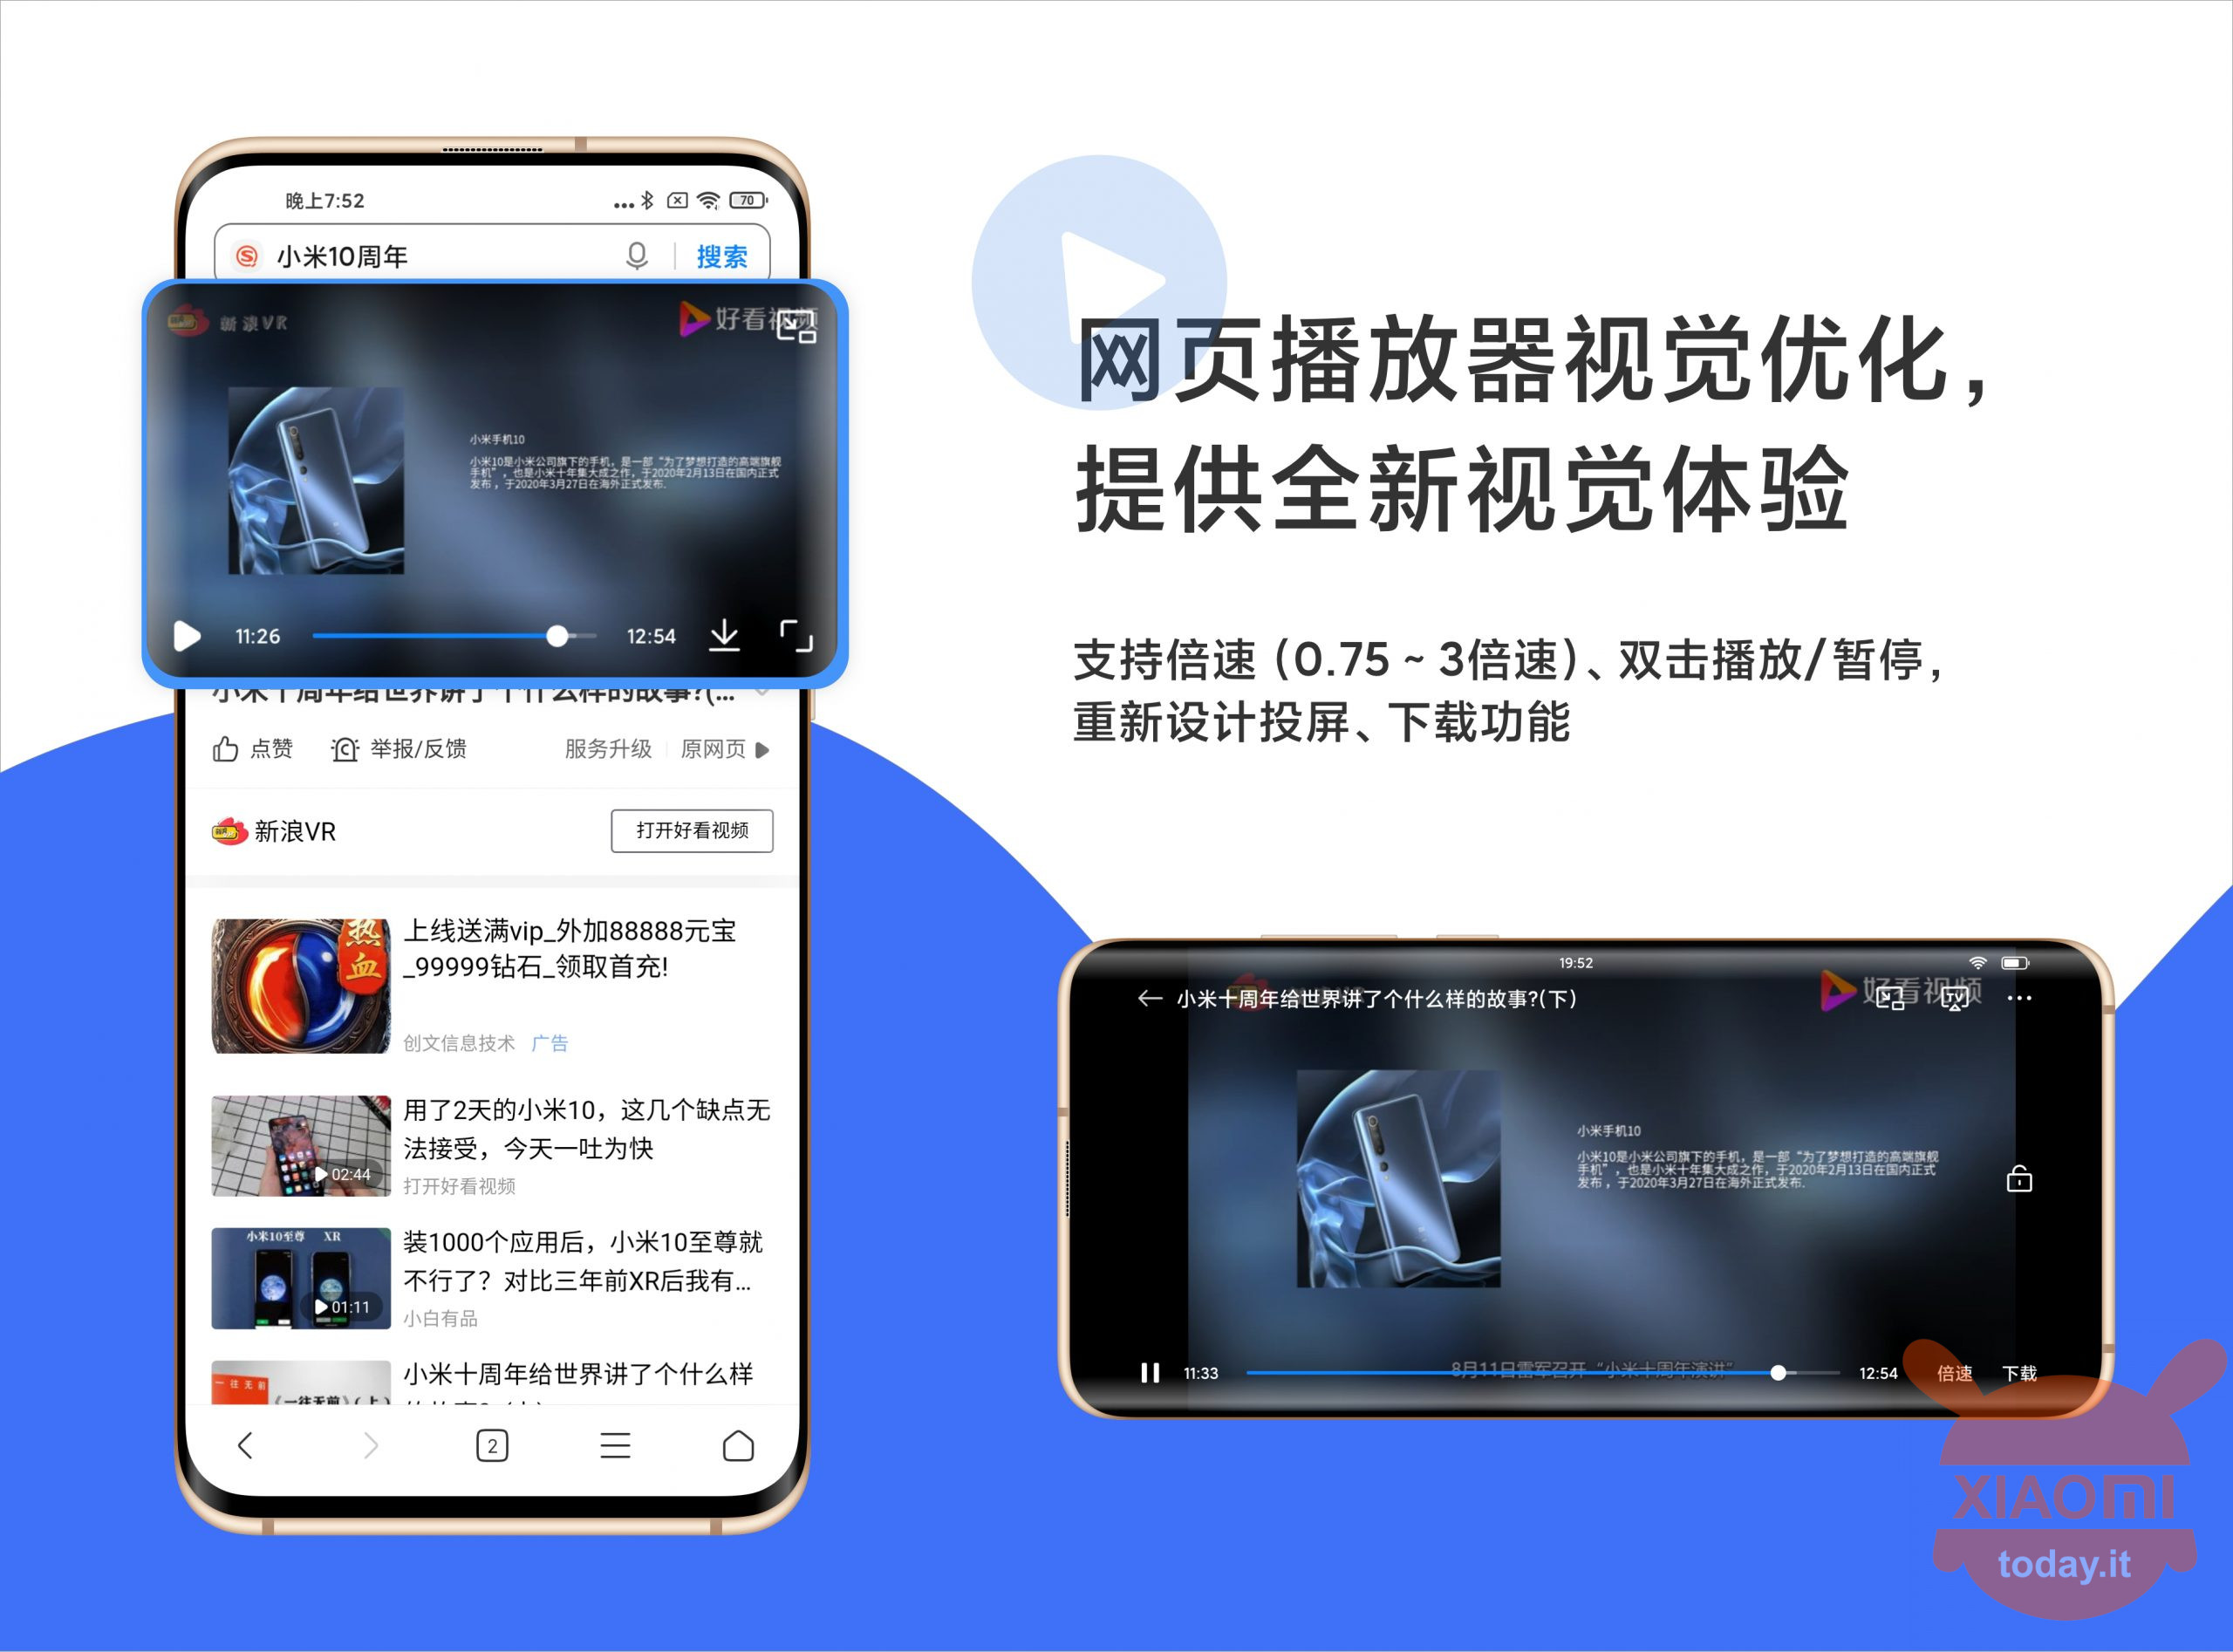 Xiaomi s Mi Browser browser is updated to version 13.0 along with these news